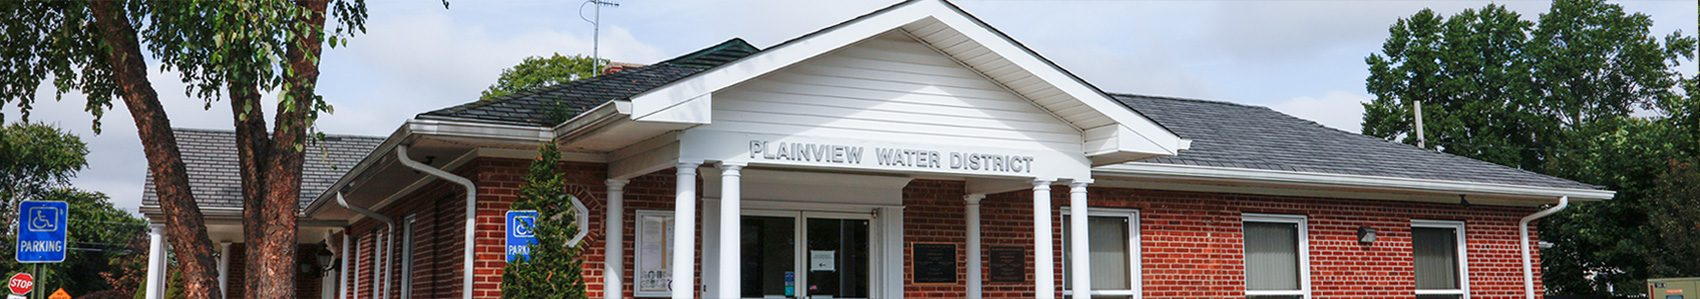 image-about-plainview-water-district